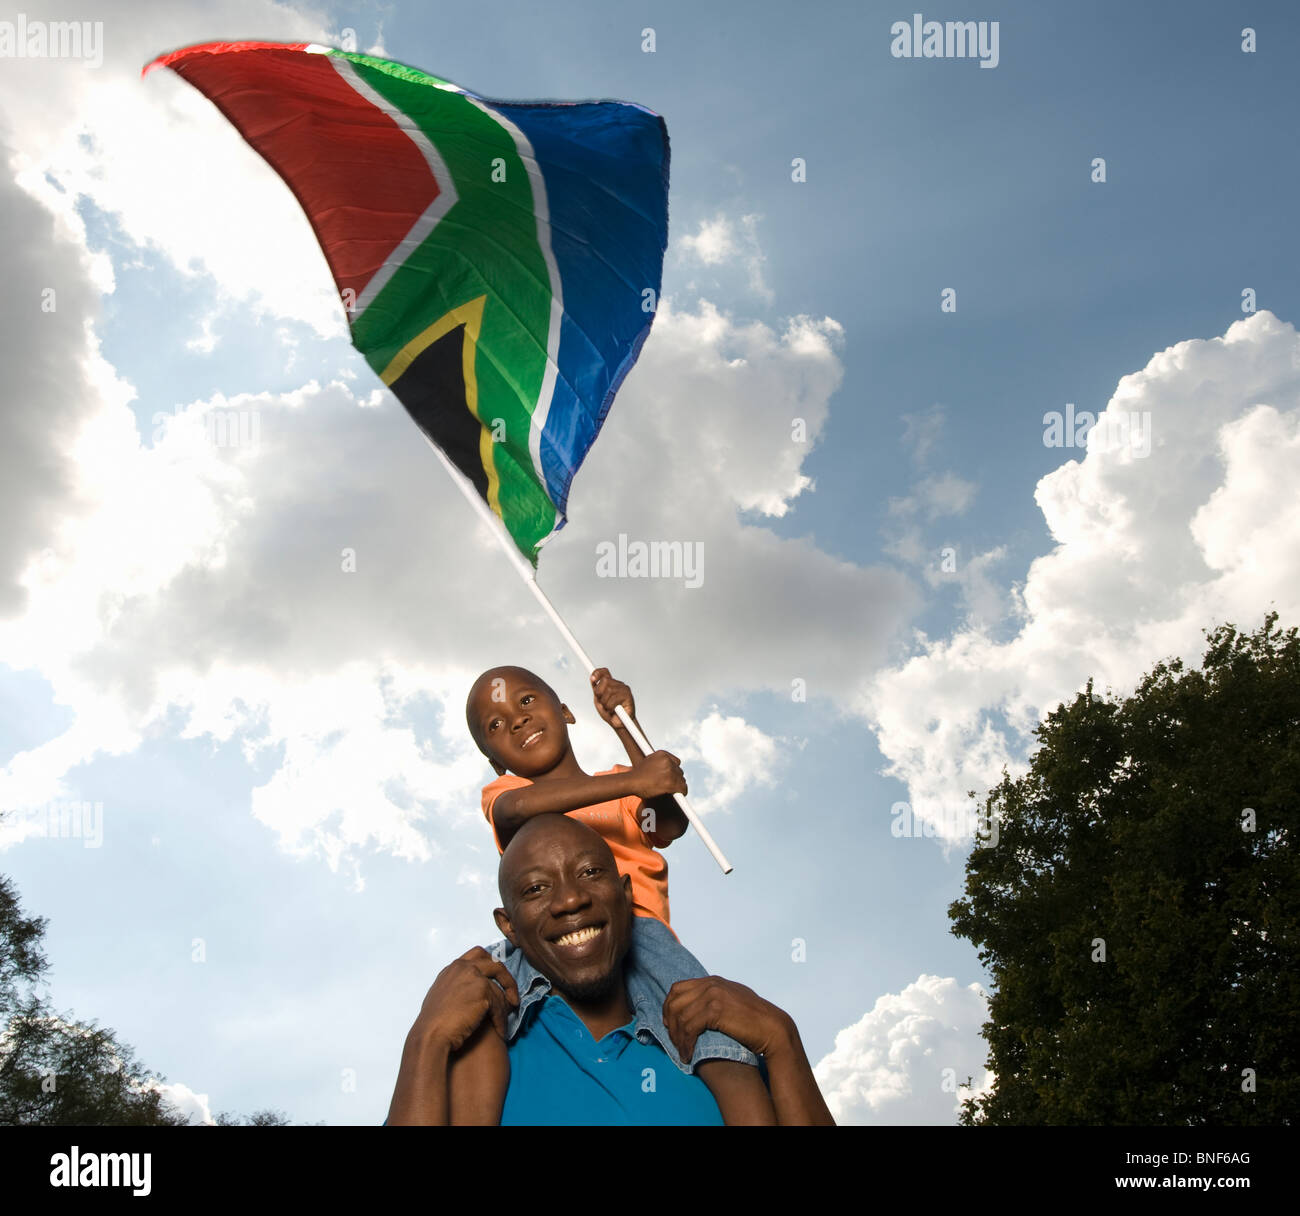 Father carrying son (4-5) sur les épaules, agitant le drapeau de l'Afrique du Sud, Johannesburg, la Province Photo Stock